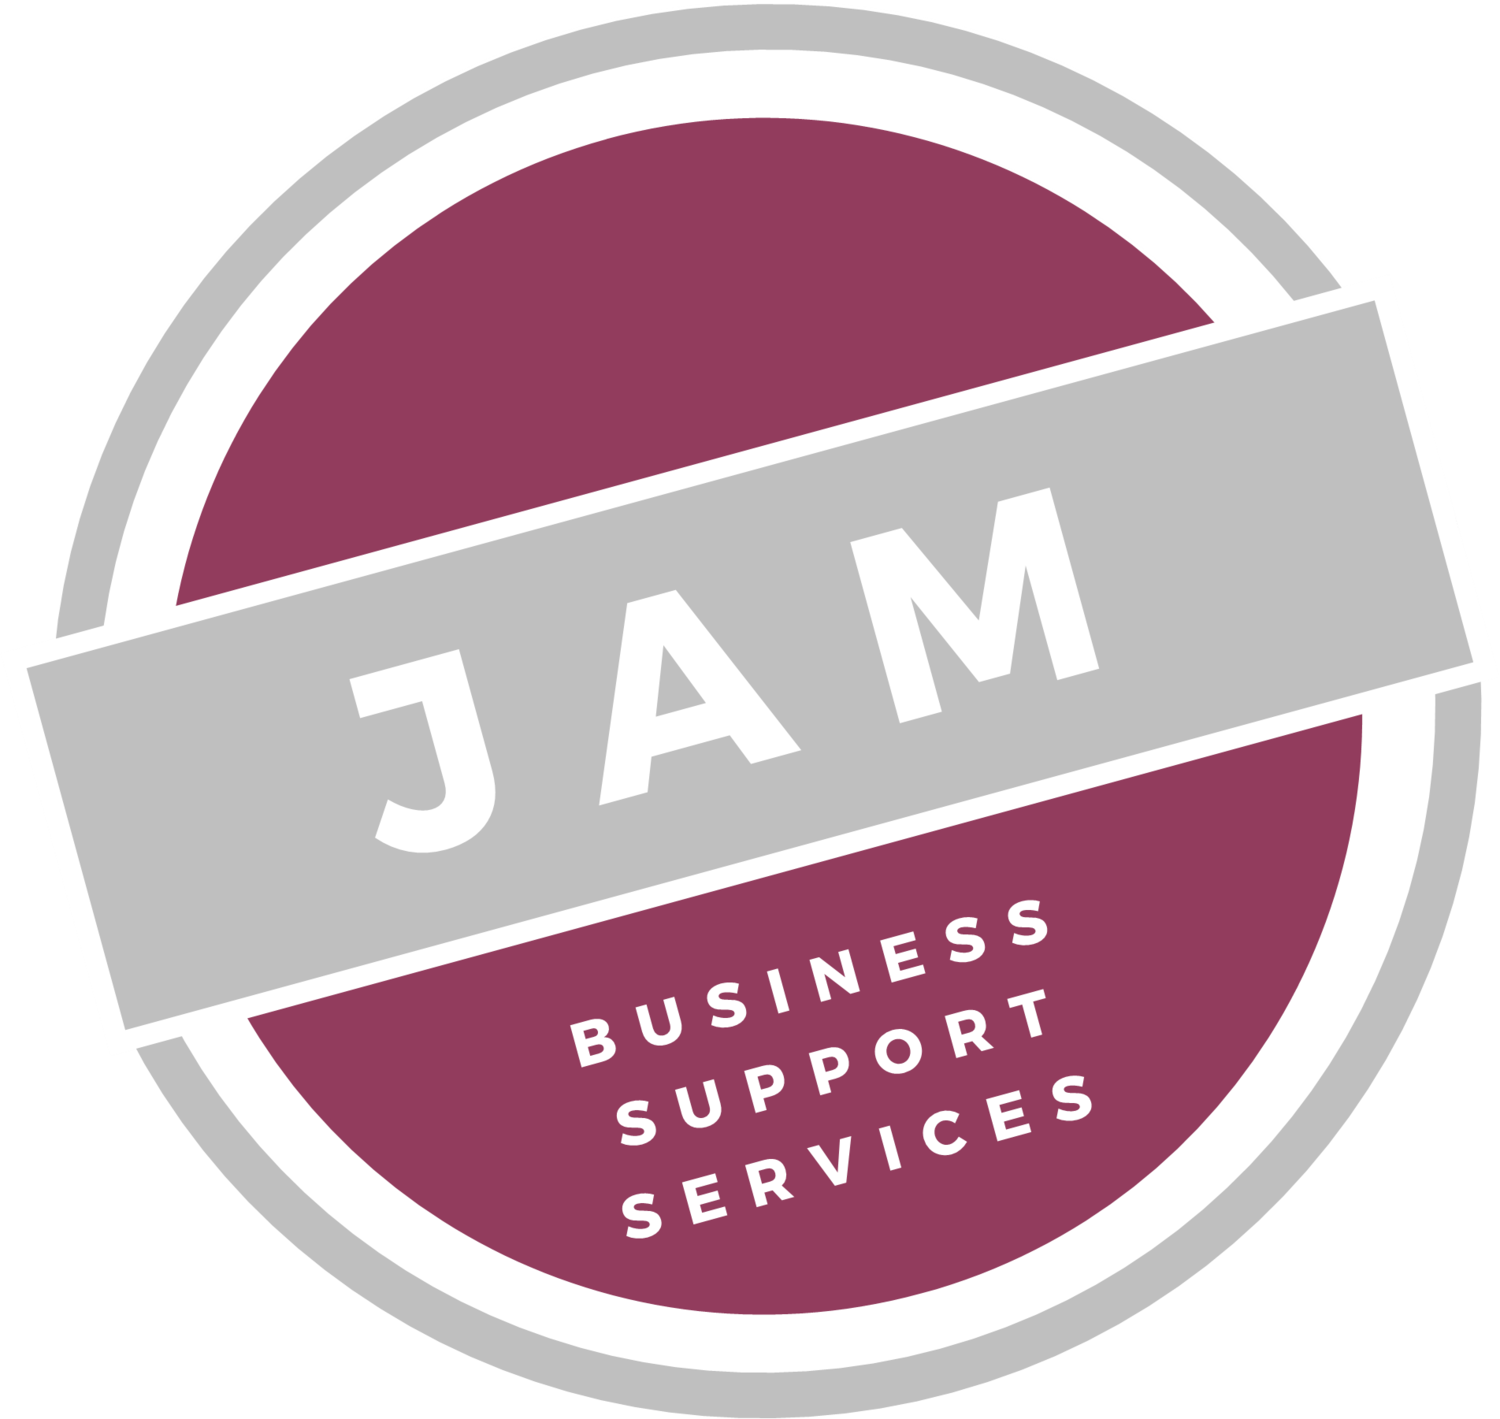 Australian Virtual Assistant | business support services | Blue Mountains based VA | JAM Business Support Services